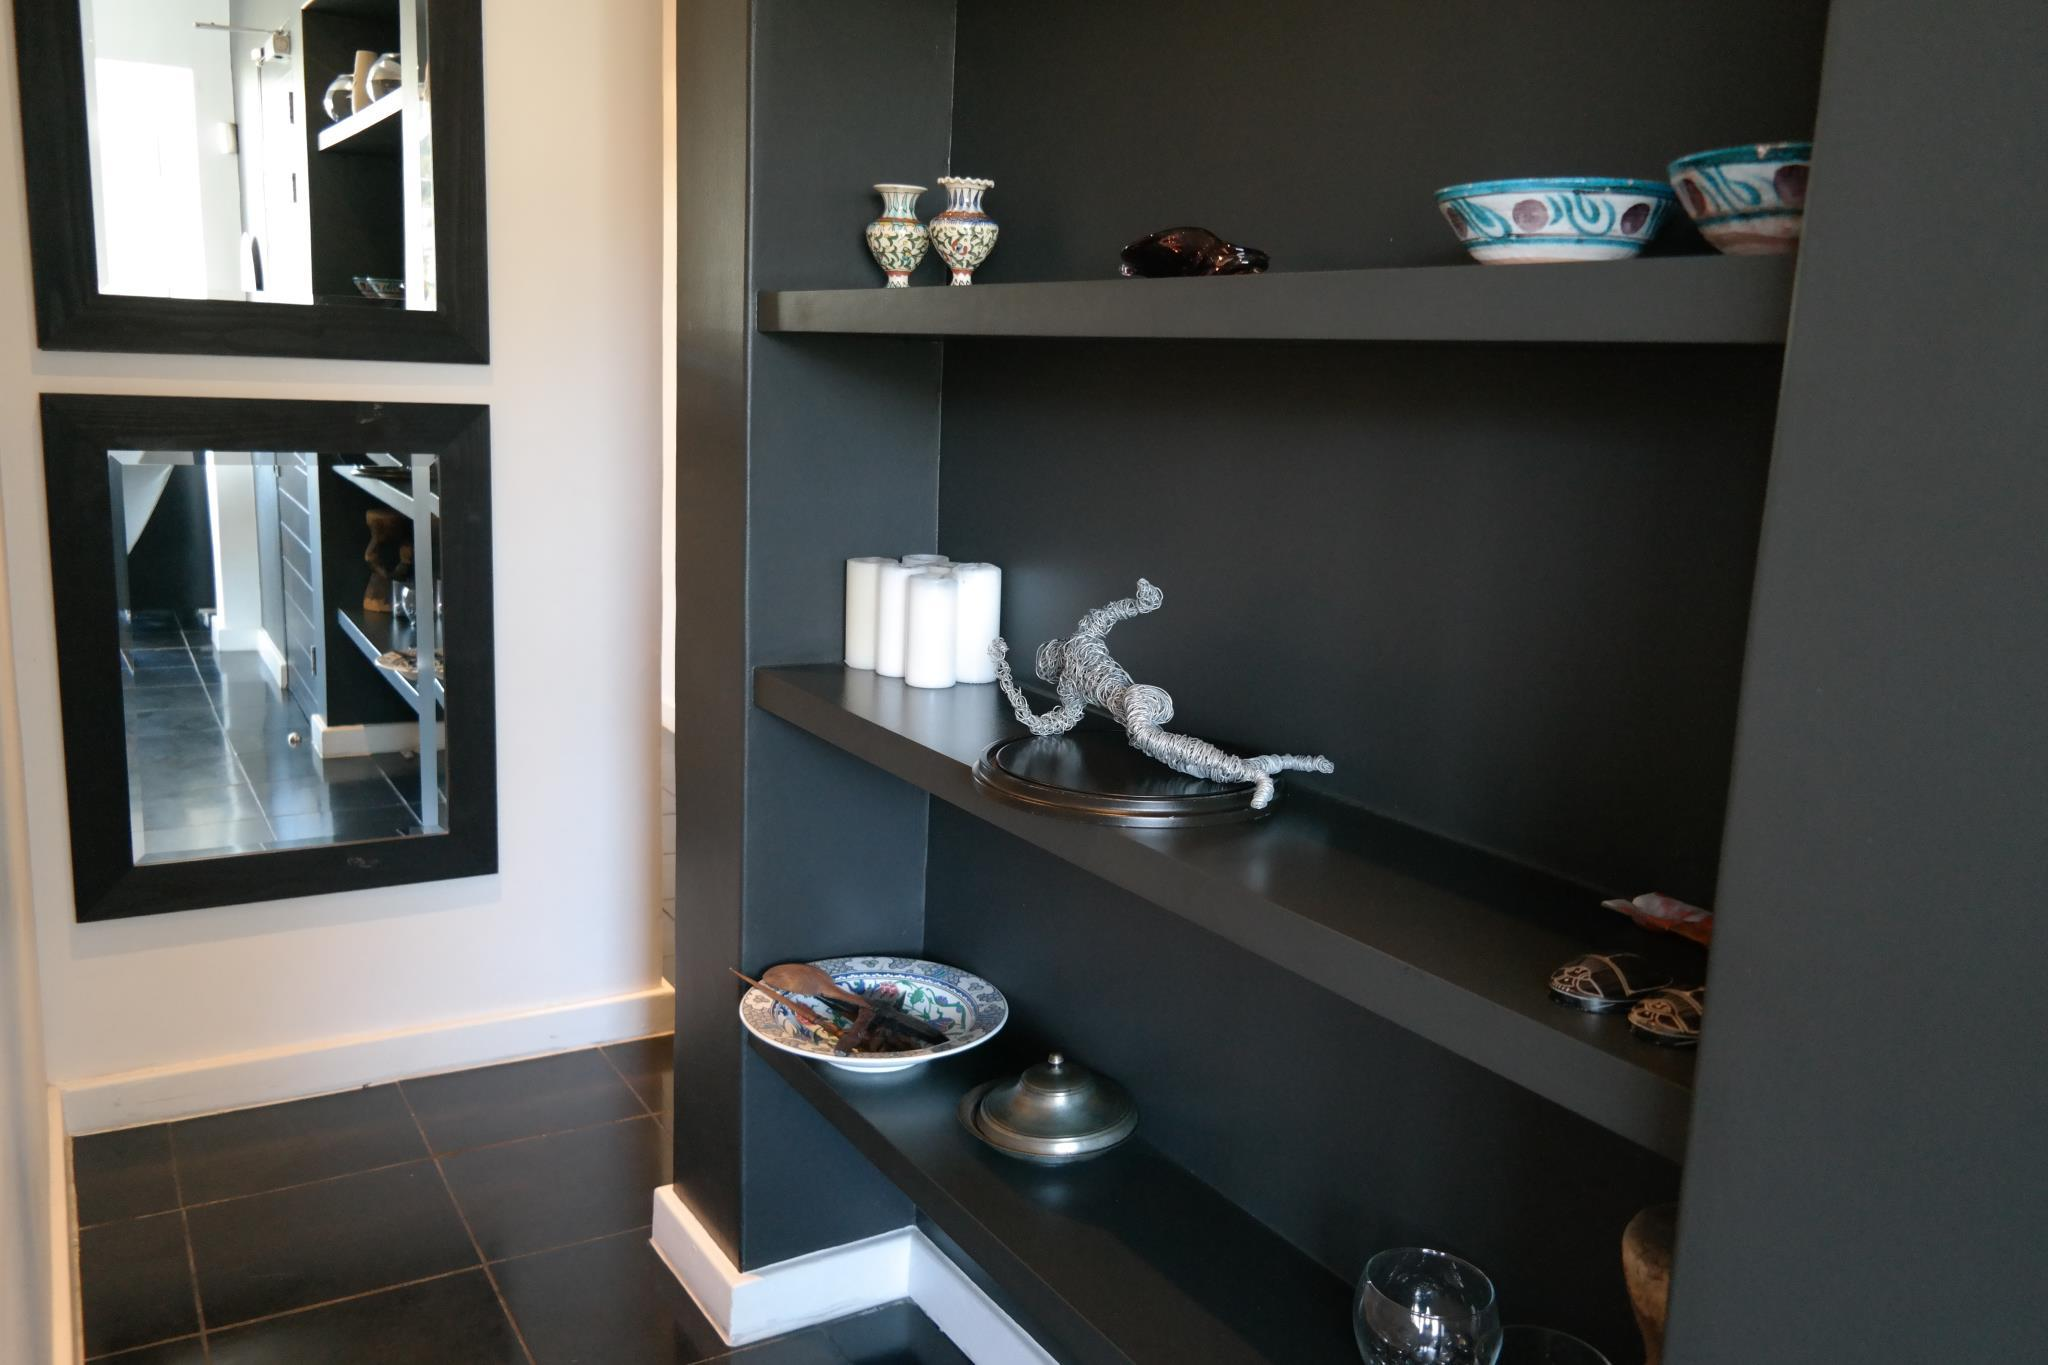 15 on Upper Orange Street Luxury Apartments, City of Cape Town